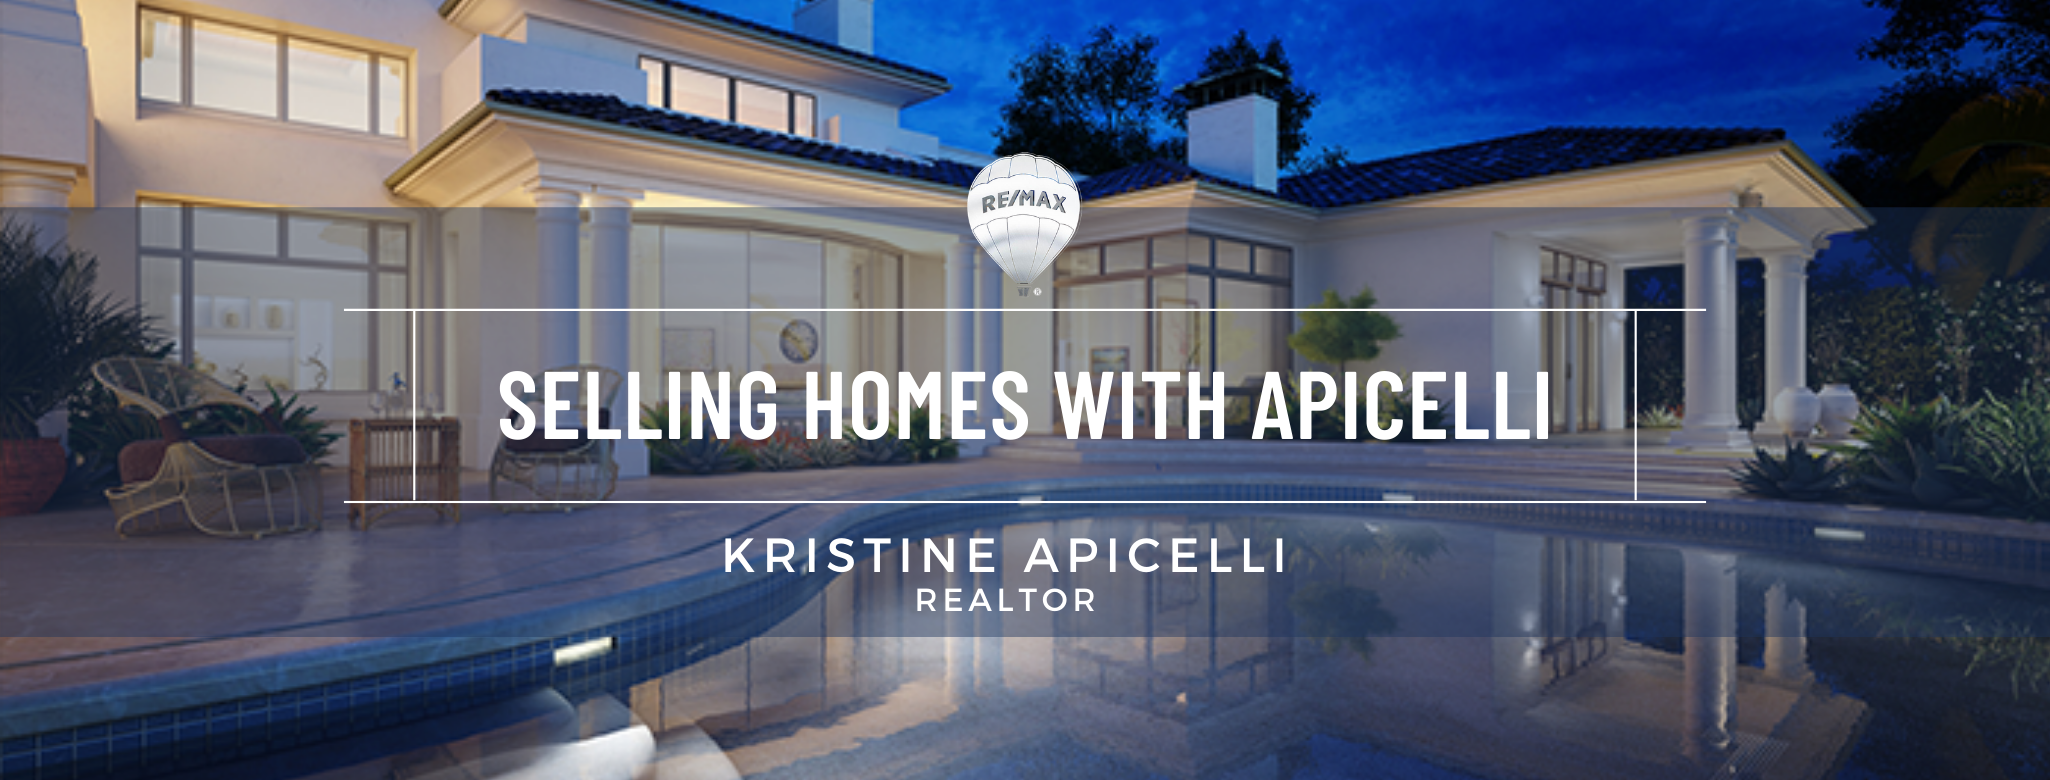 Kristine Apicelli - Selling Homes with Apicelli